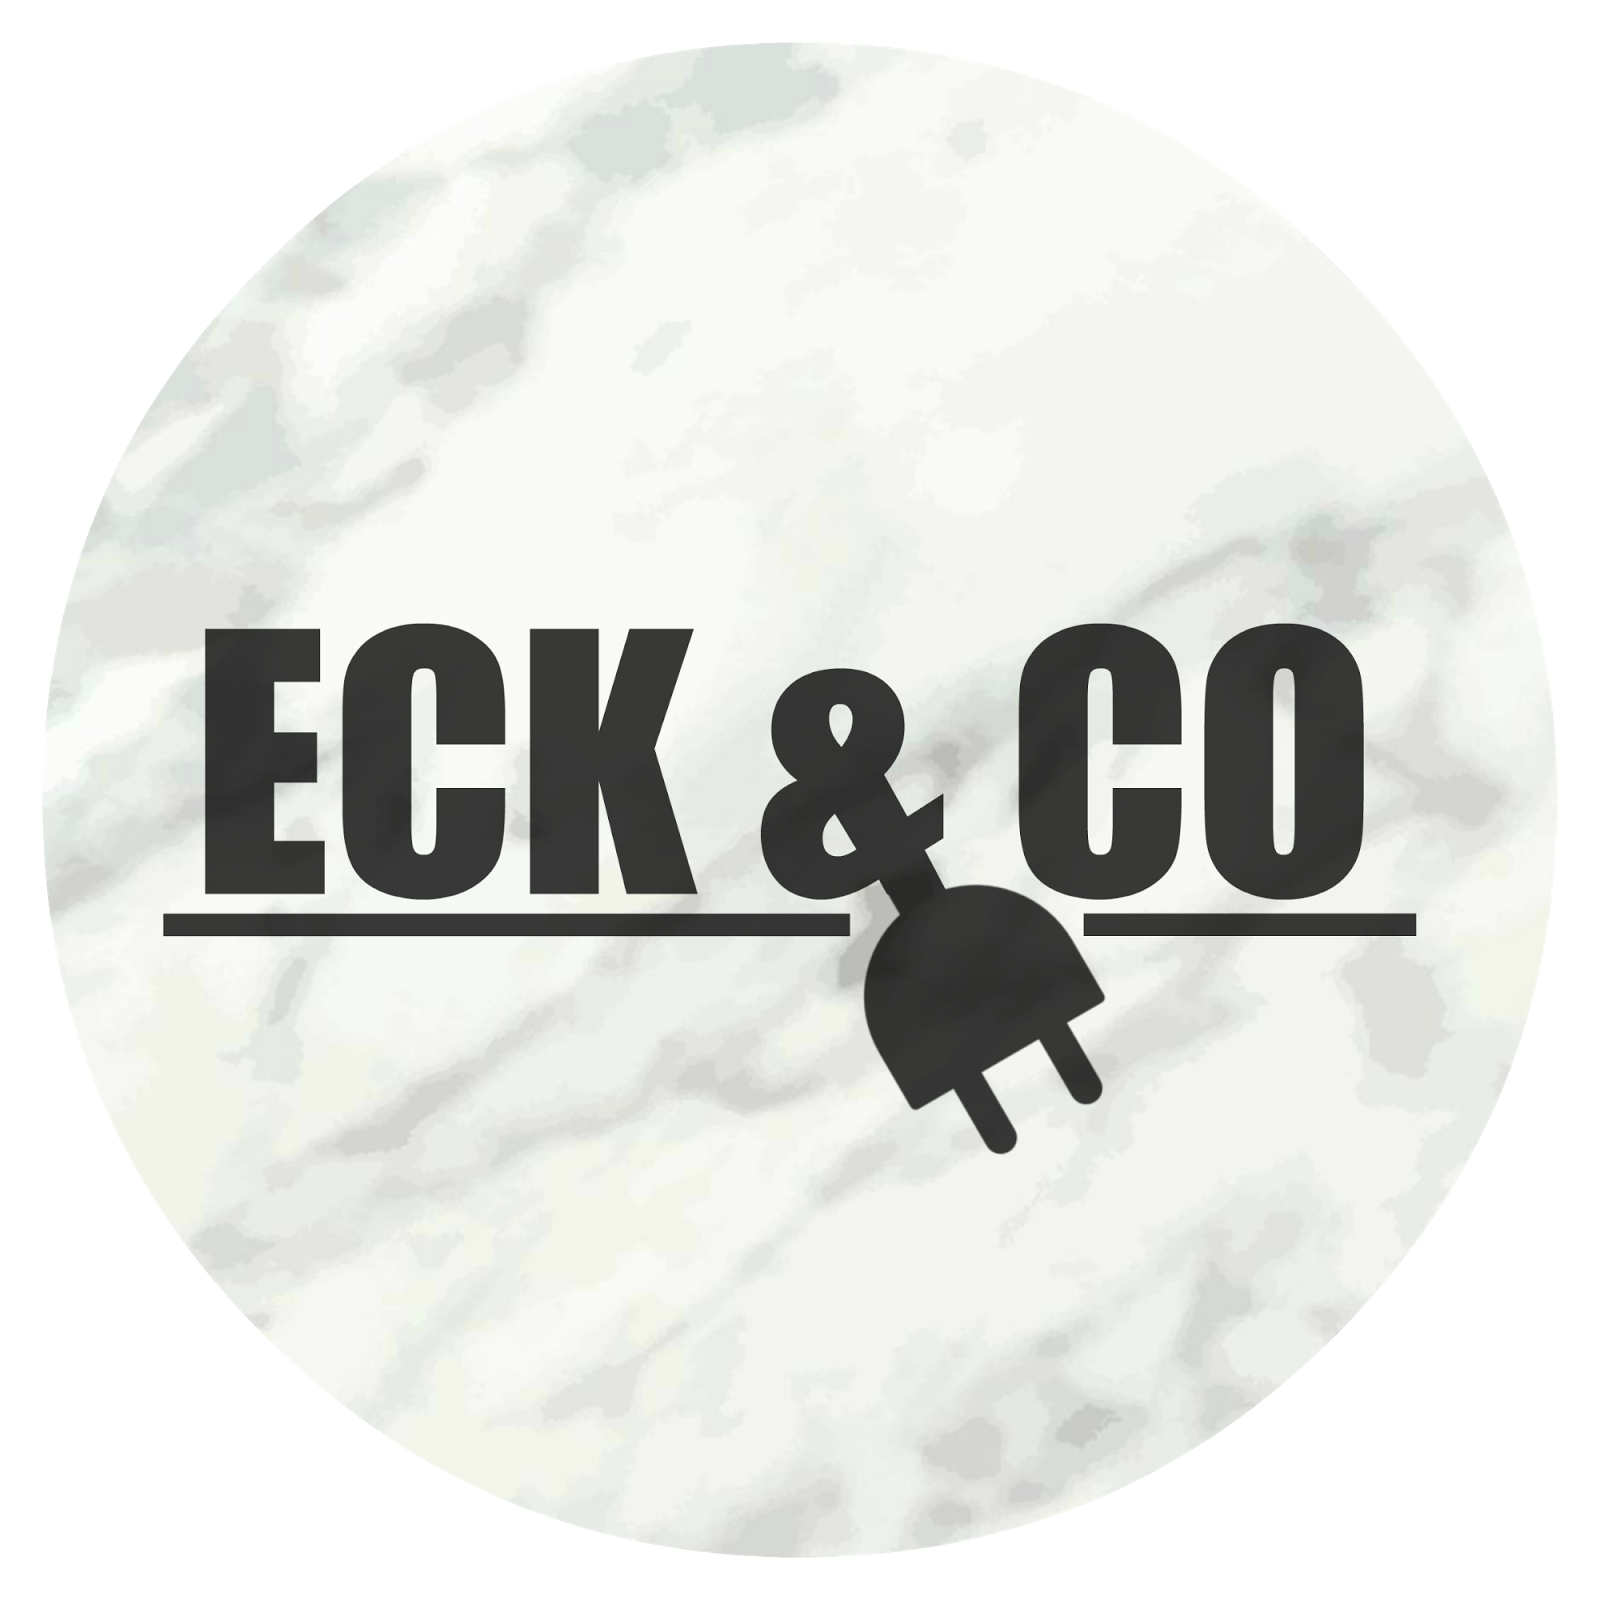 ECK & CO